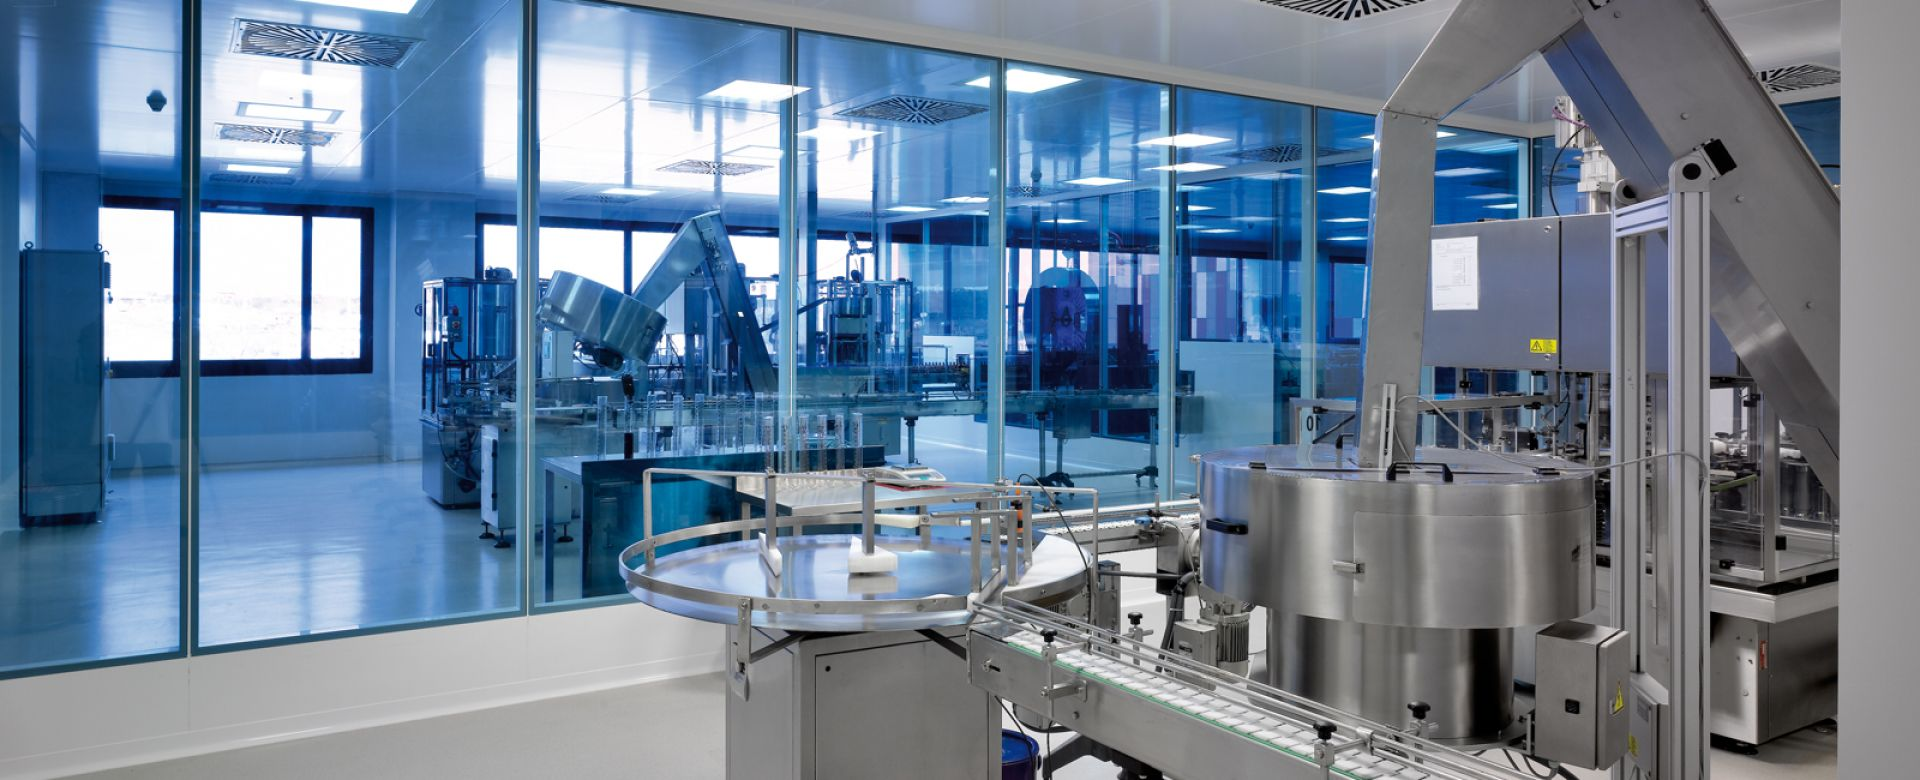 Clestra Cleanroom